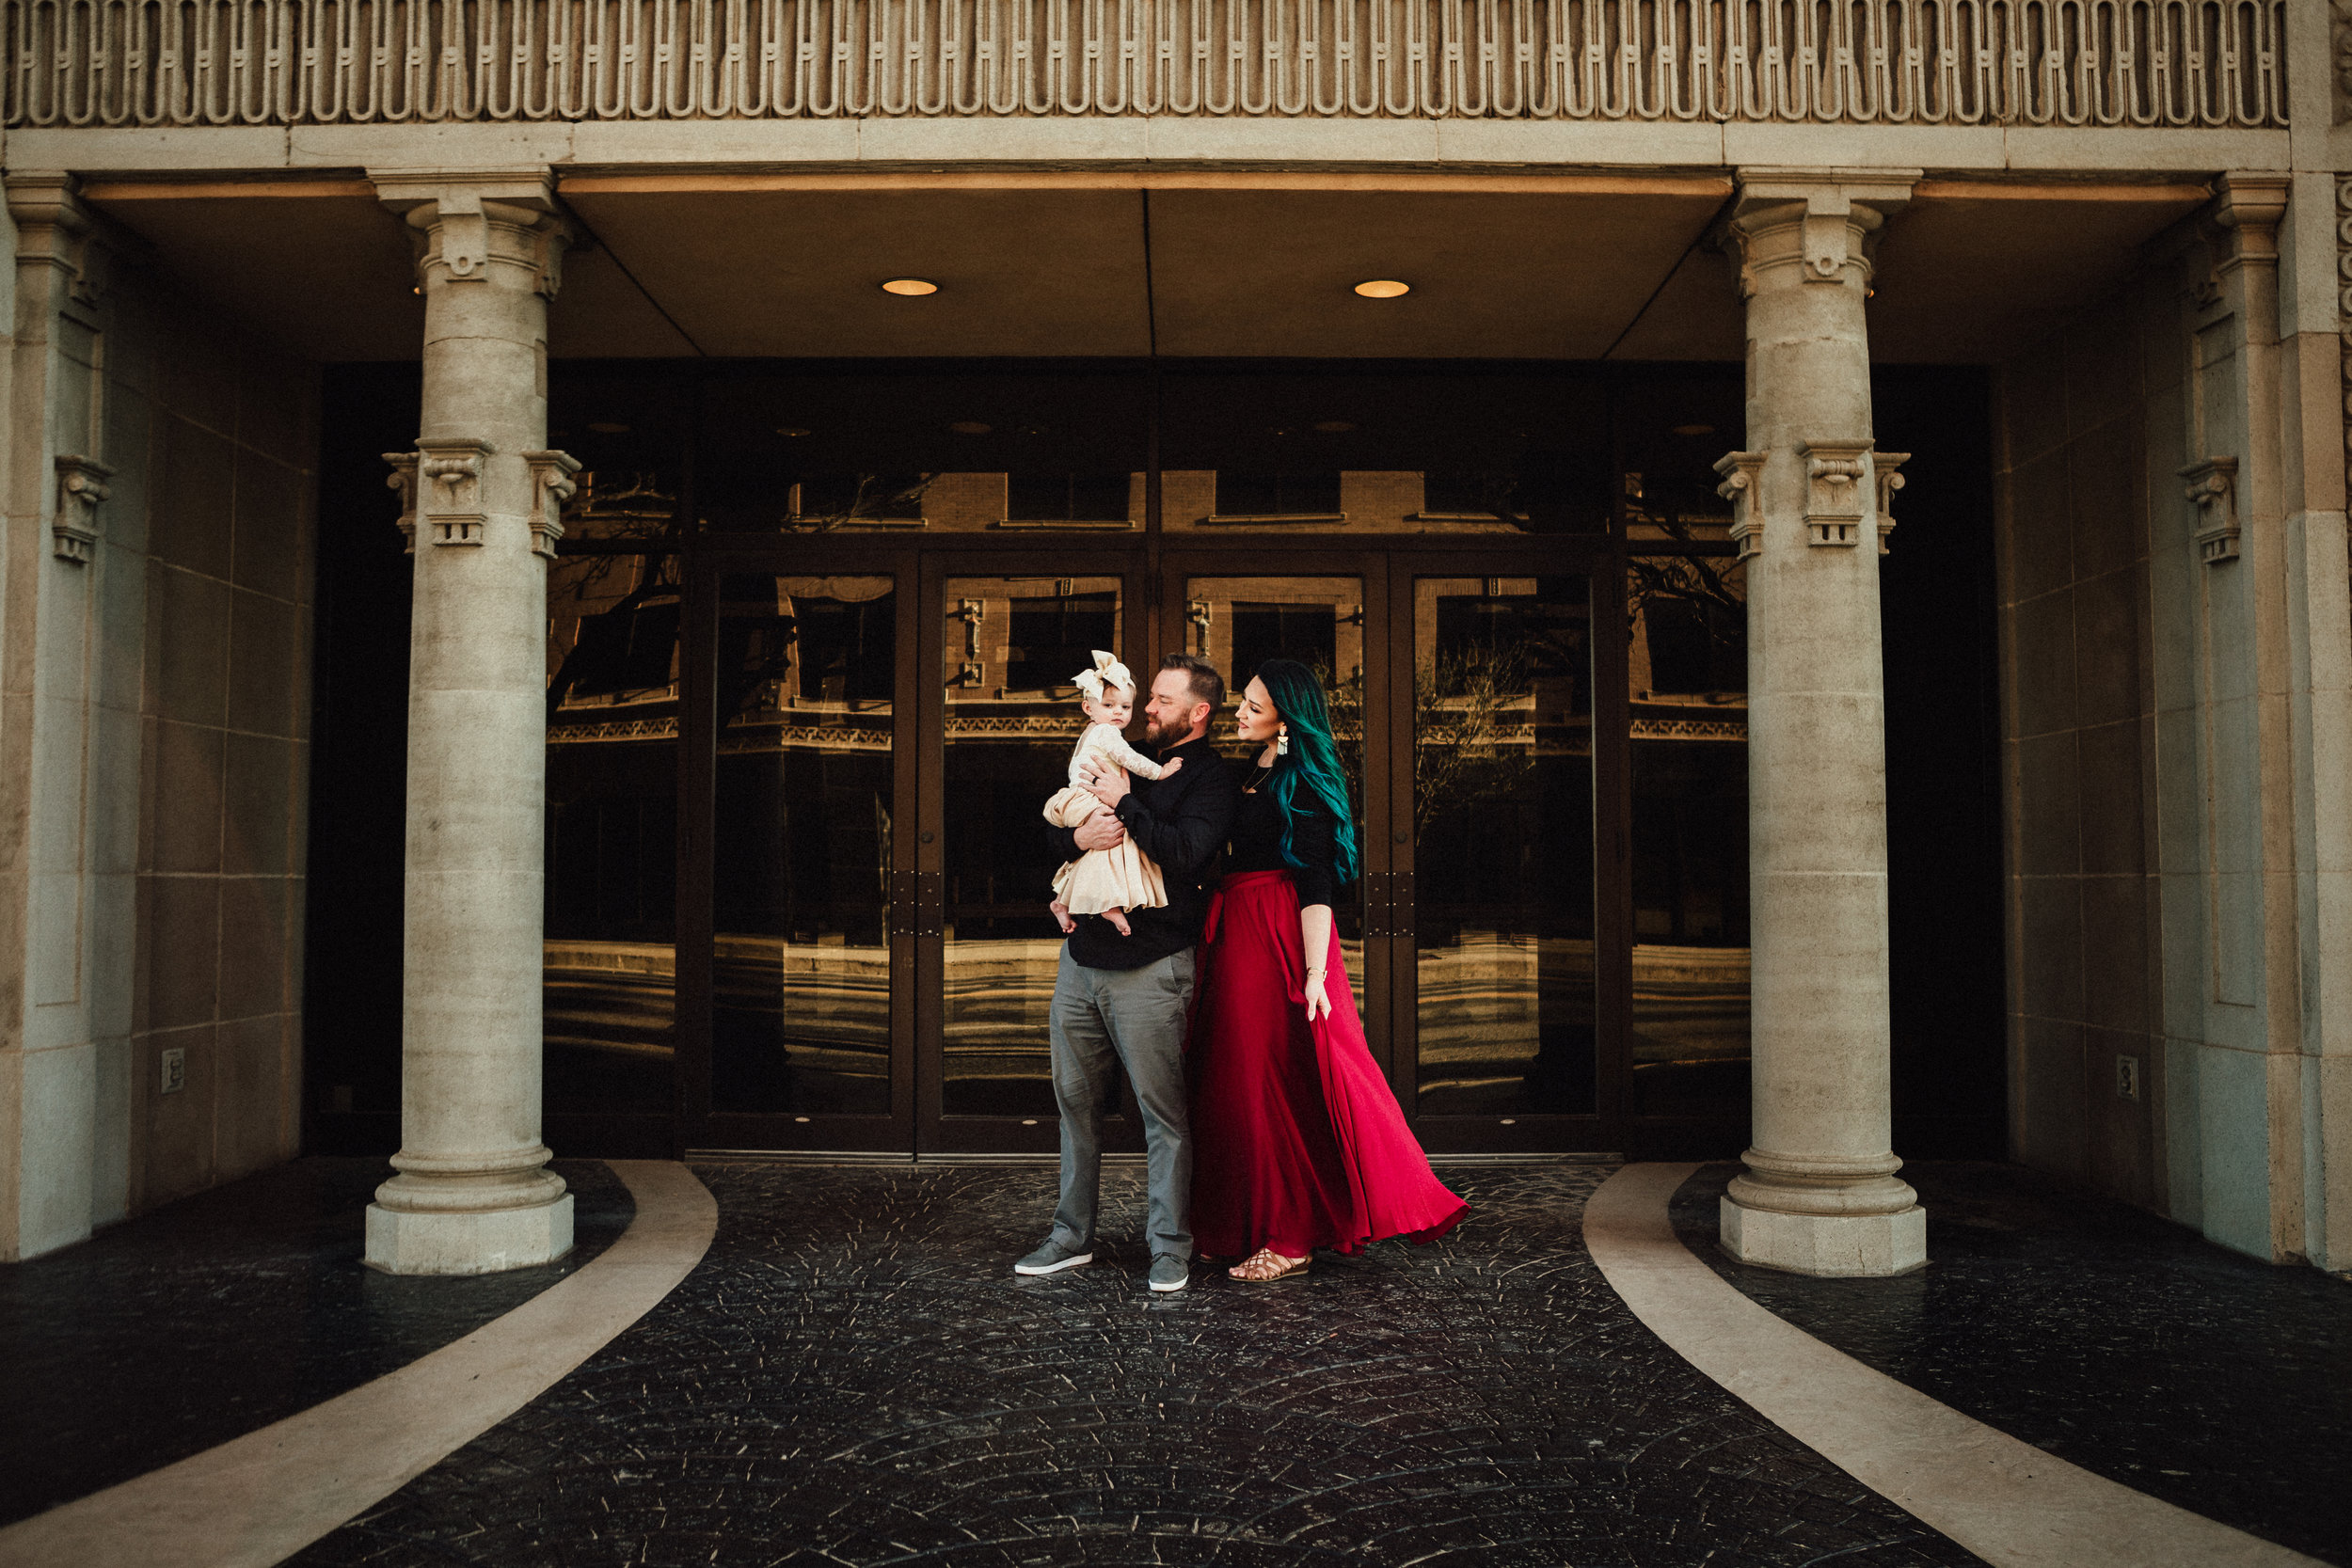 Zoomed out building in downtown Amarillo Texas with ruby red accents #tealawardphotography #texaslocationchoice #amarillophotographer #amarillofamilyphotographer #emotionalphotography #engagementphotography #couplesphotography #pickingaphotosessionlocation #whatsimportant #everythingtogether #pickingcolorsforphotos #location #photosessionlocation